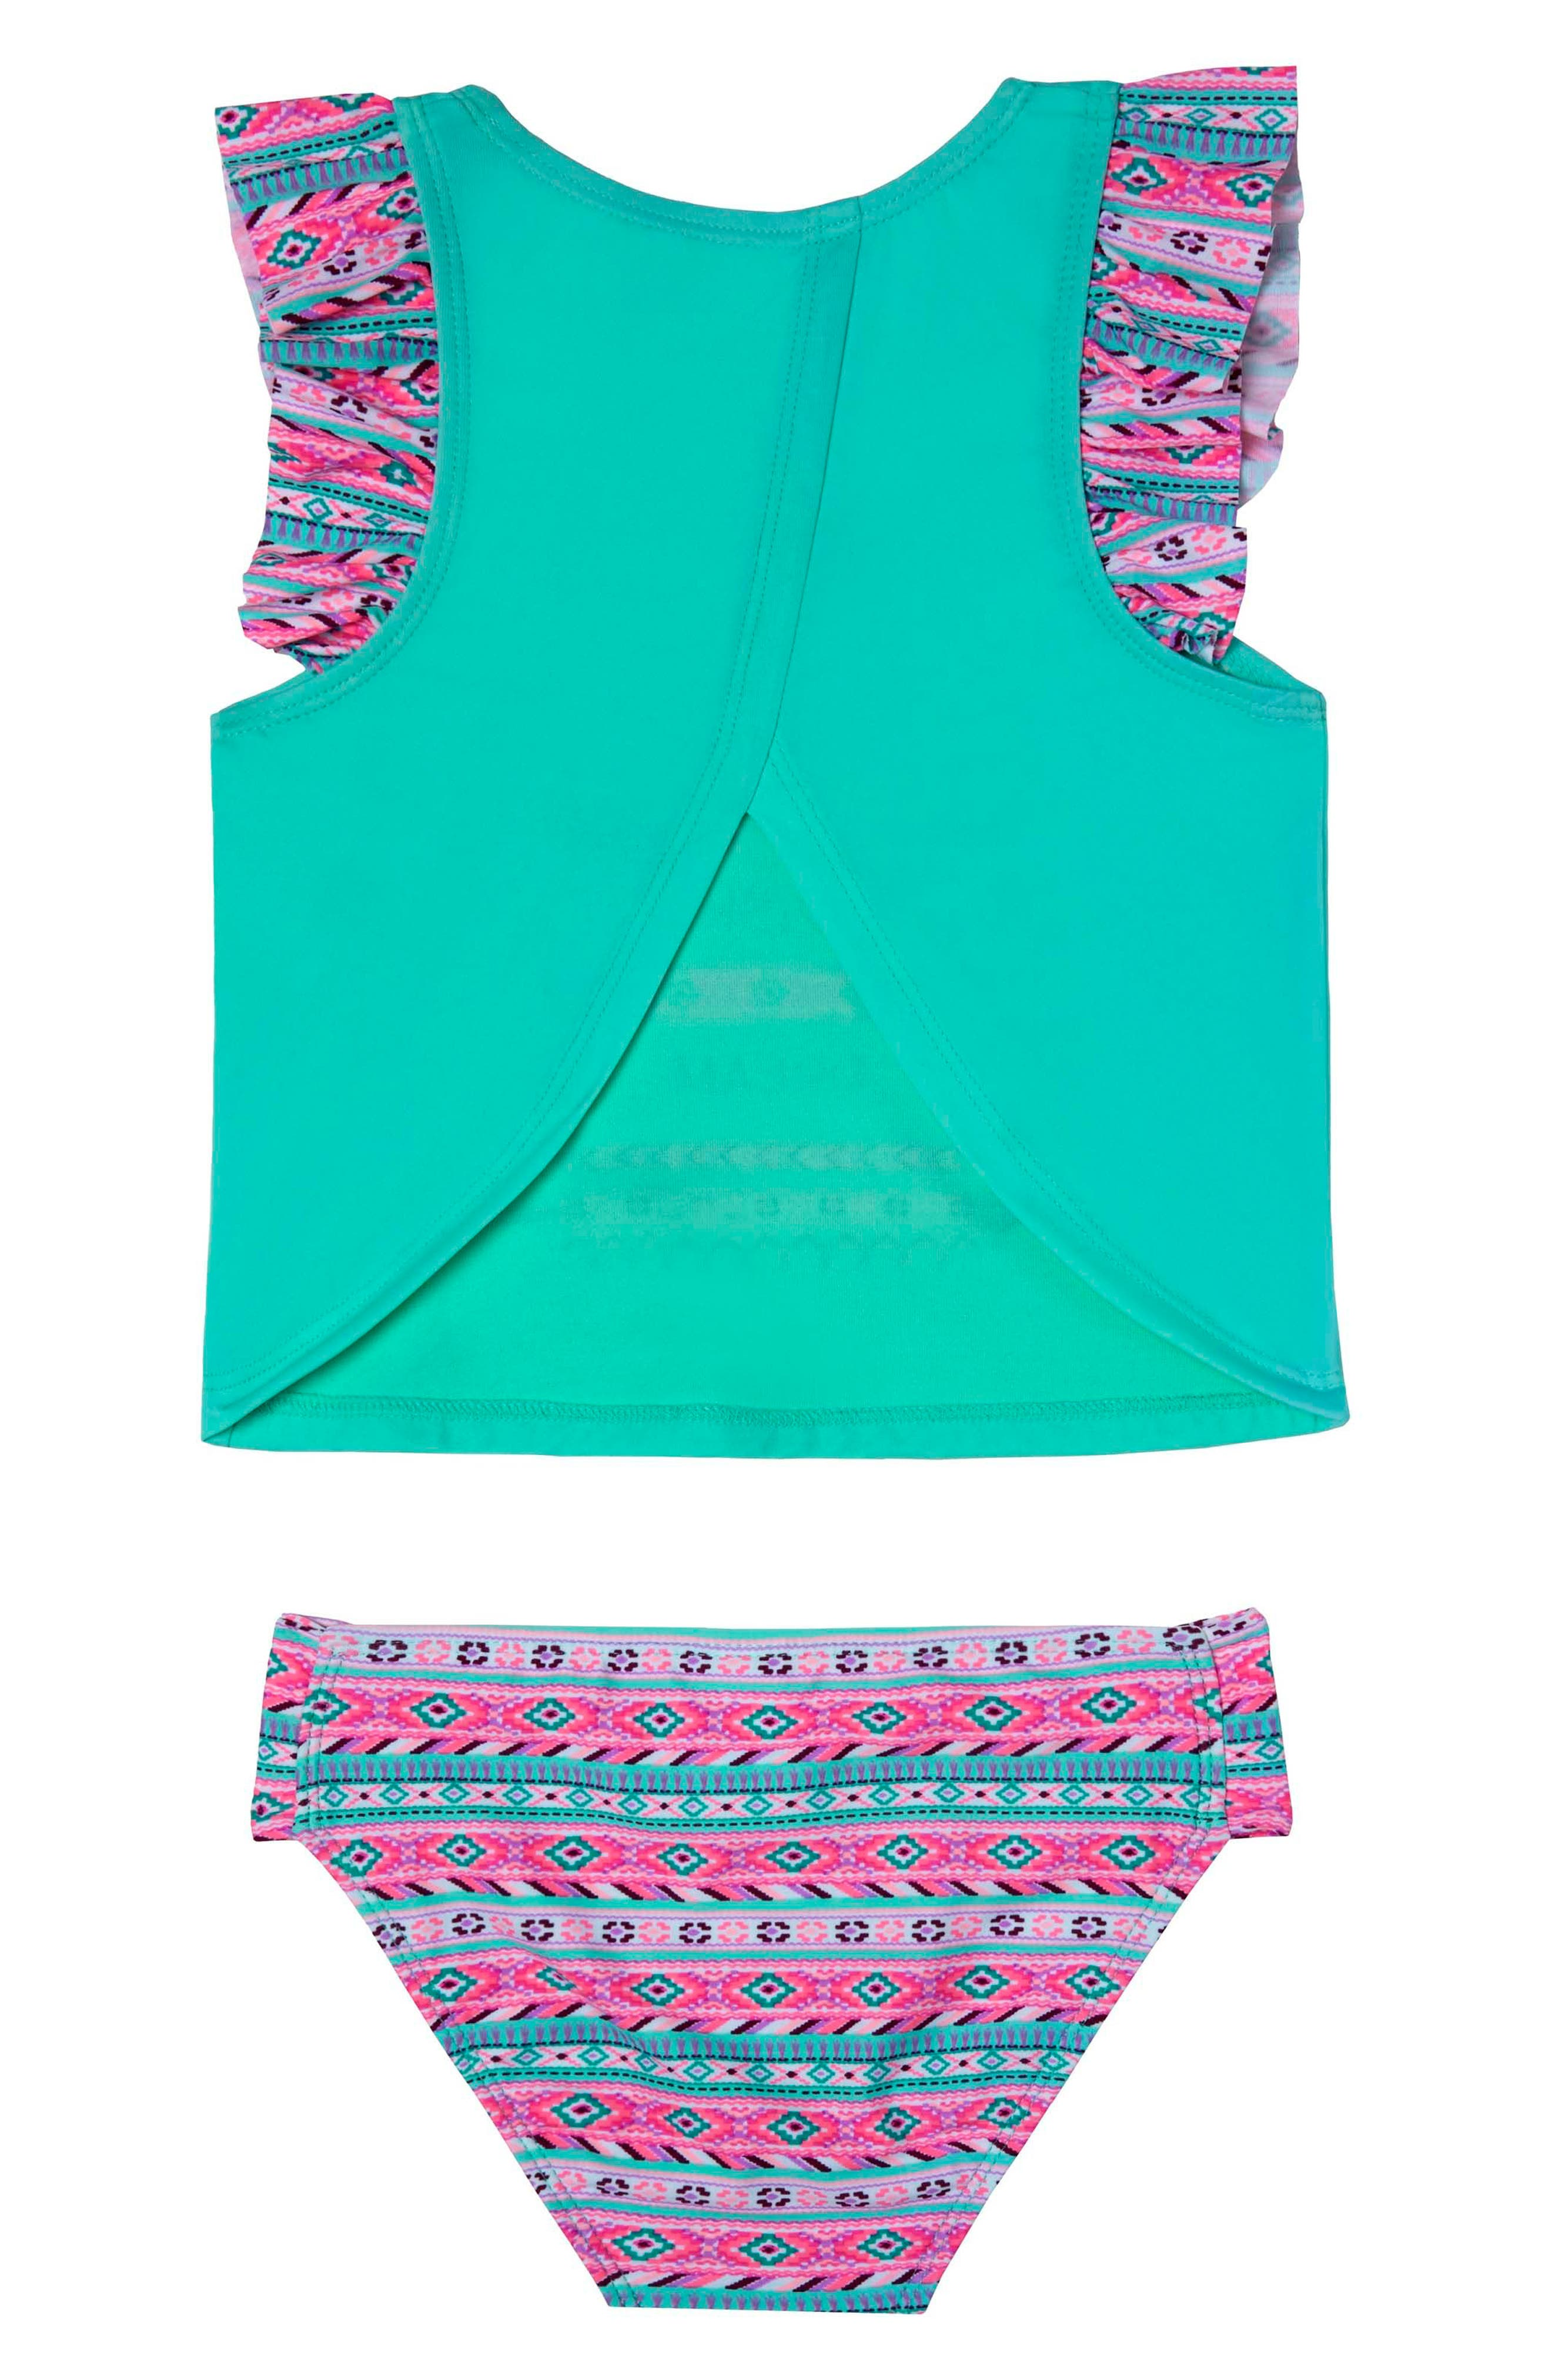 BFF - Hope, Wish & Dream Two-Piece Tankini Swimsuit,                             Alternate thumbnail 2, color,                             Green